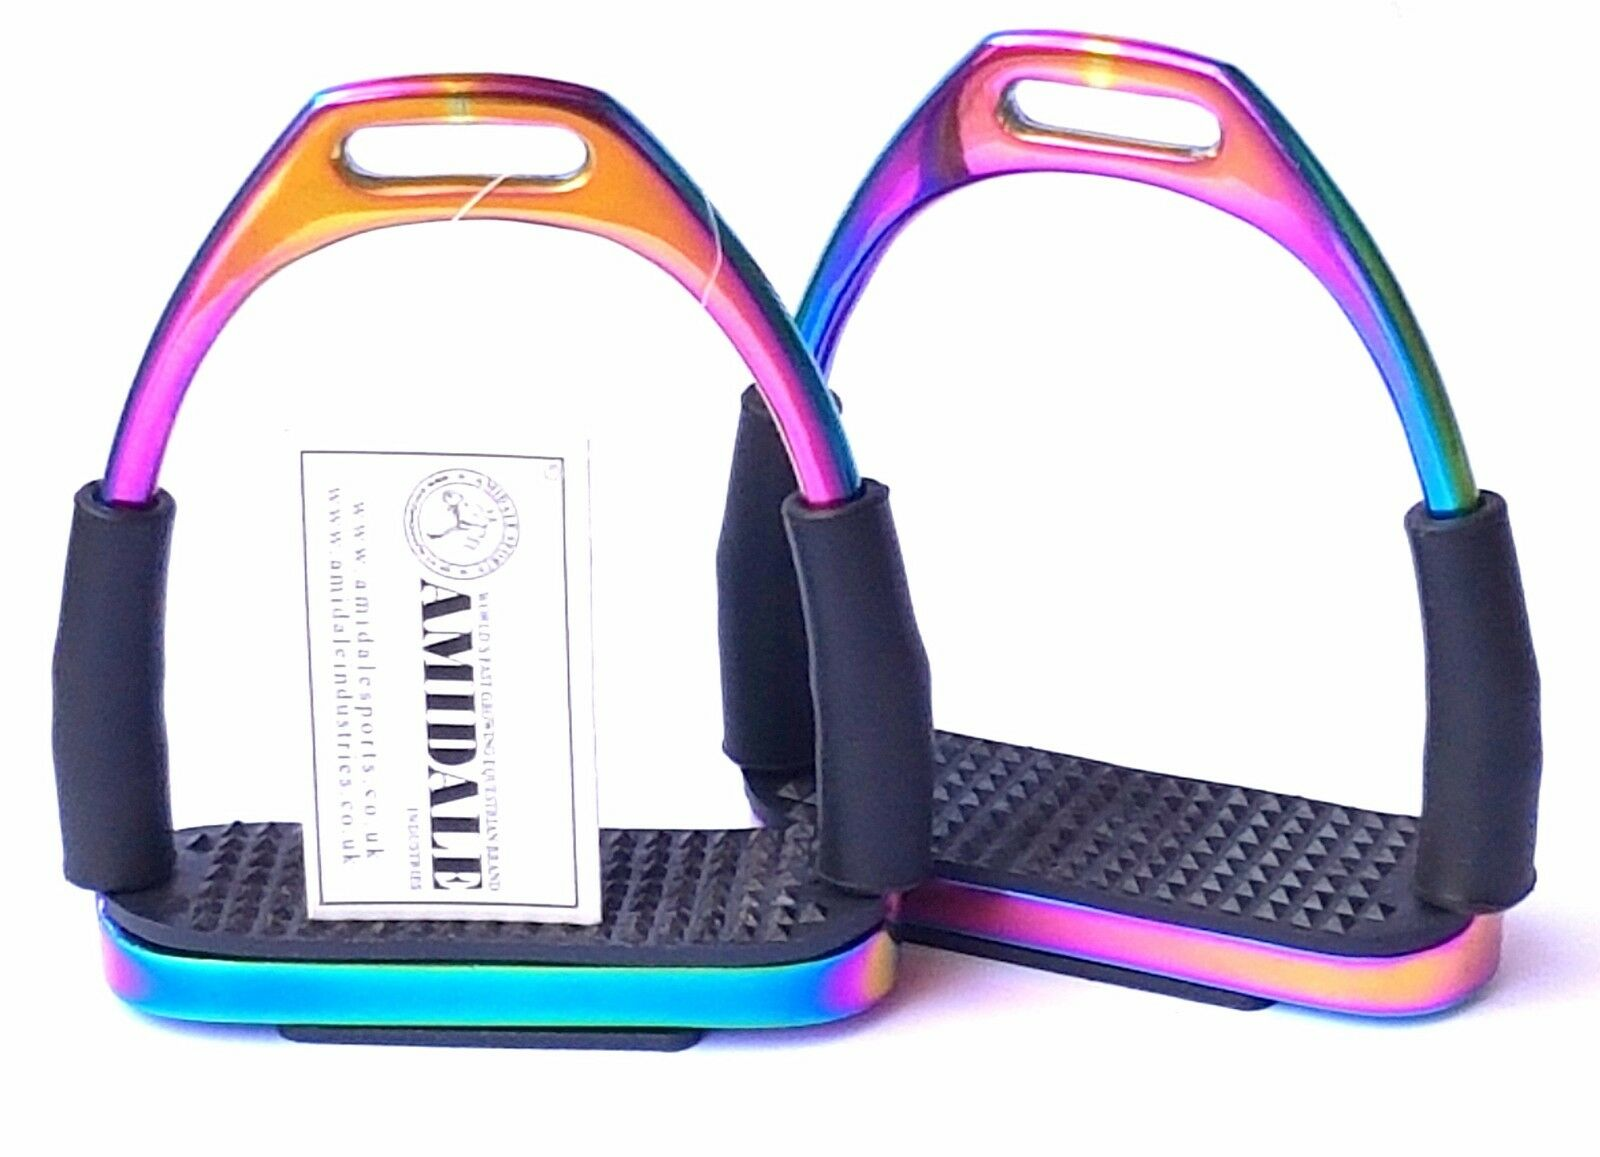 FLEXI RAINBOW SAFETY STIRRUPS HORSE RIDING BENDY IRONS S  STEEL FROM AMIDAL BNWT